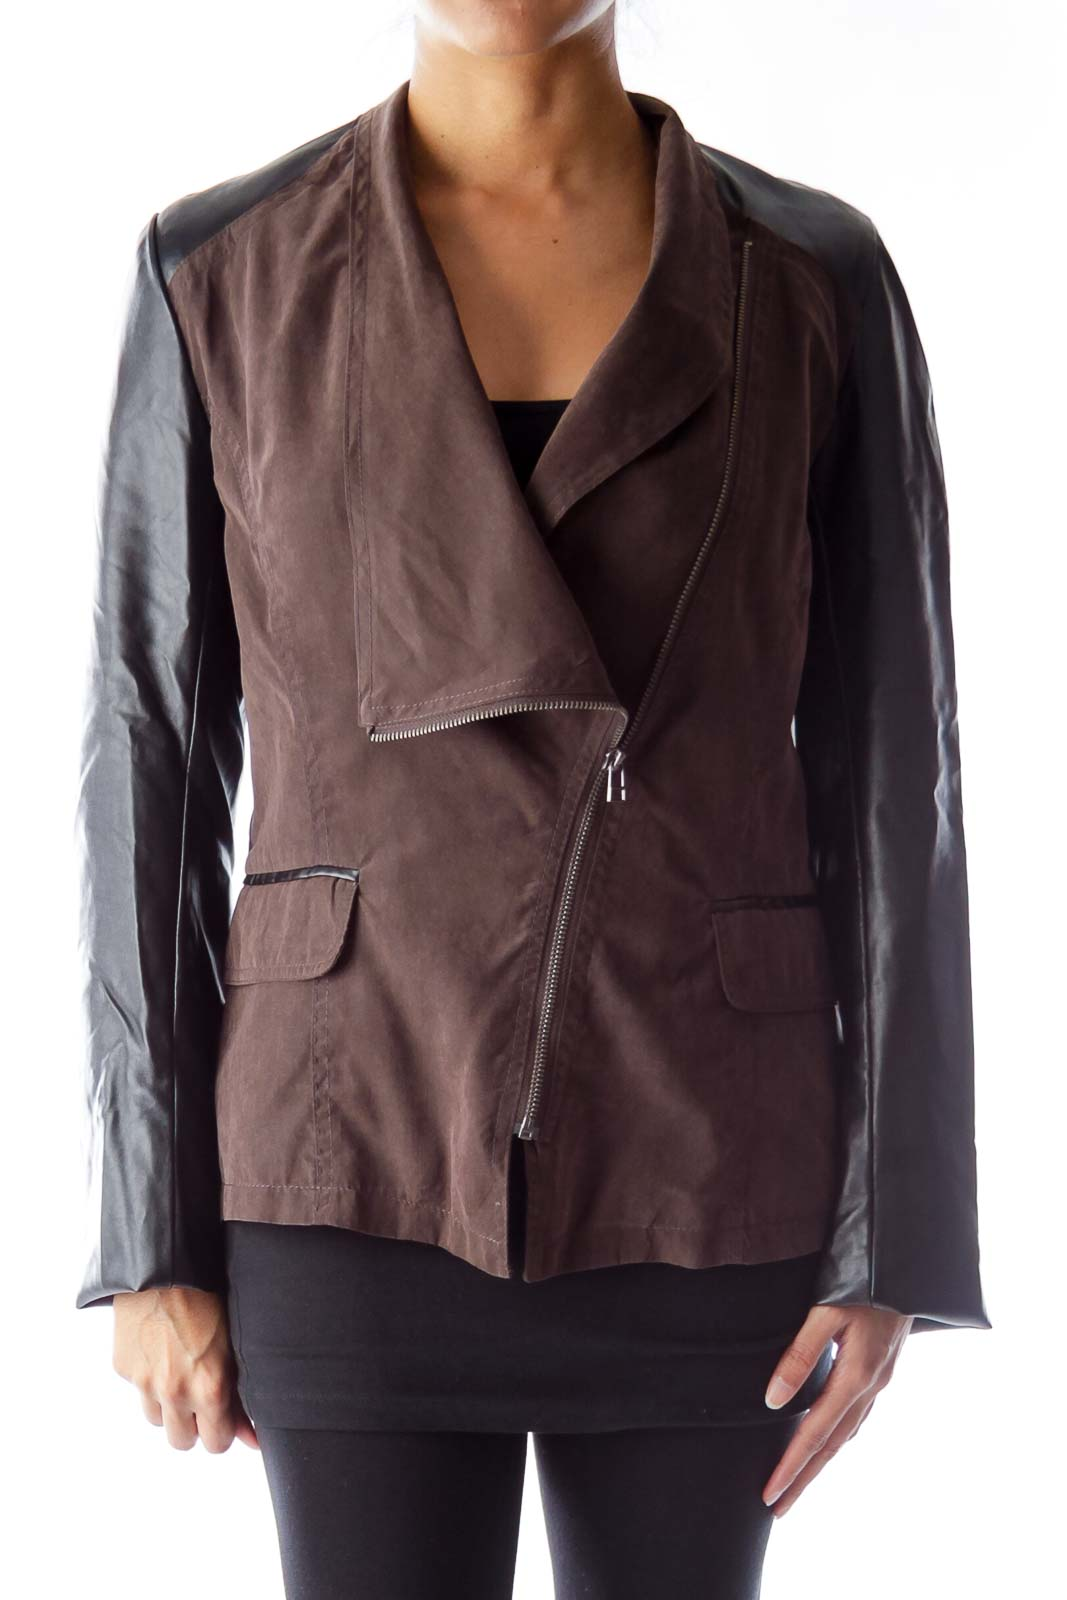 Black & Brown Jacket